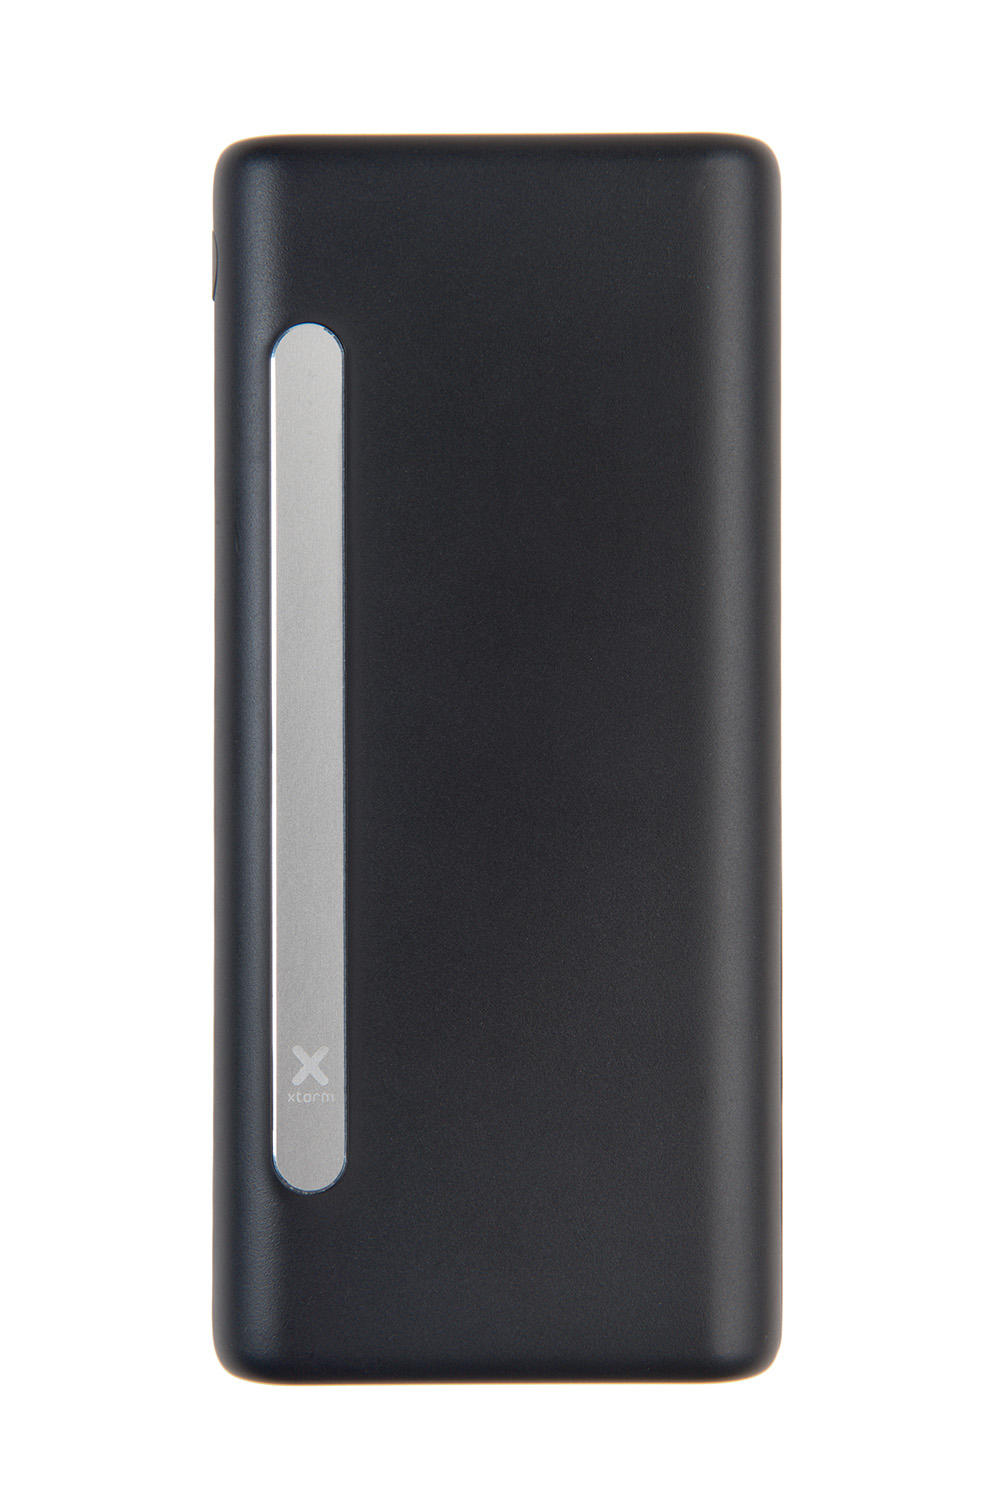 Xtorm Rock powerbank